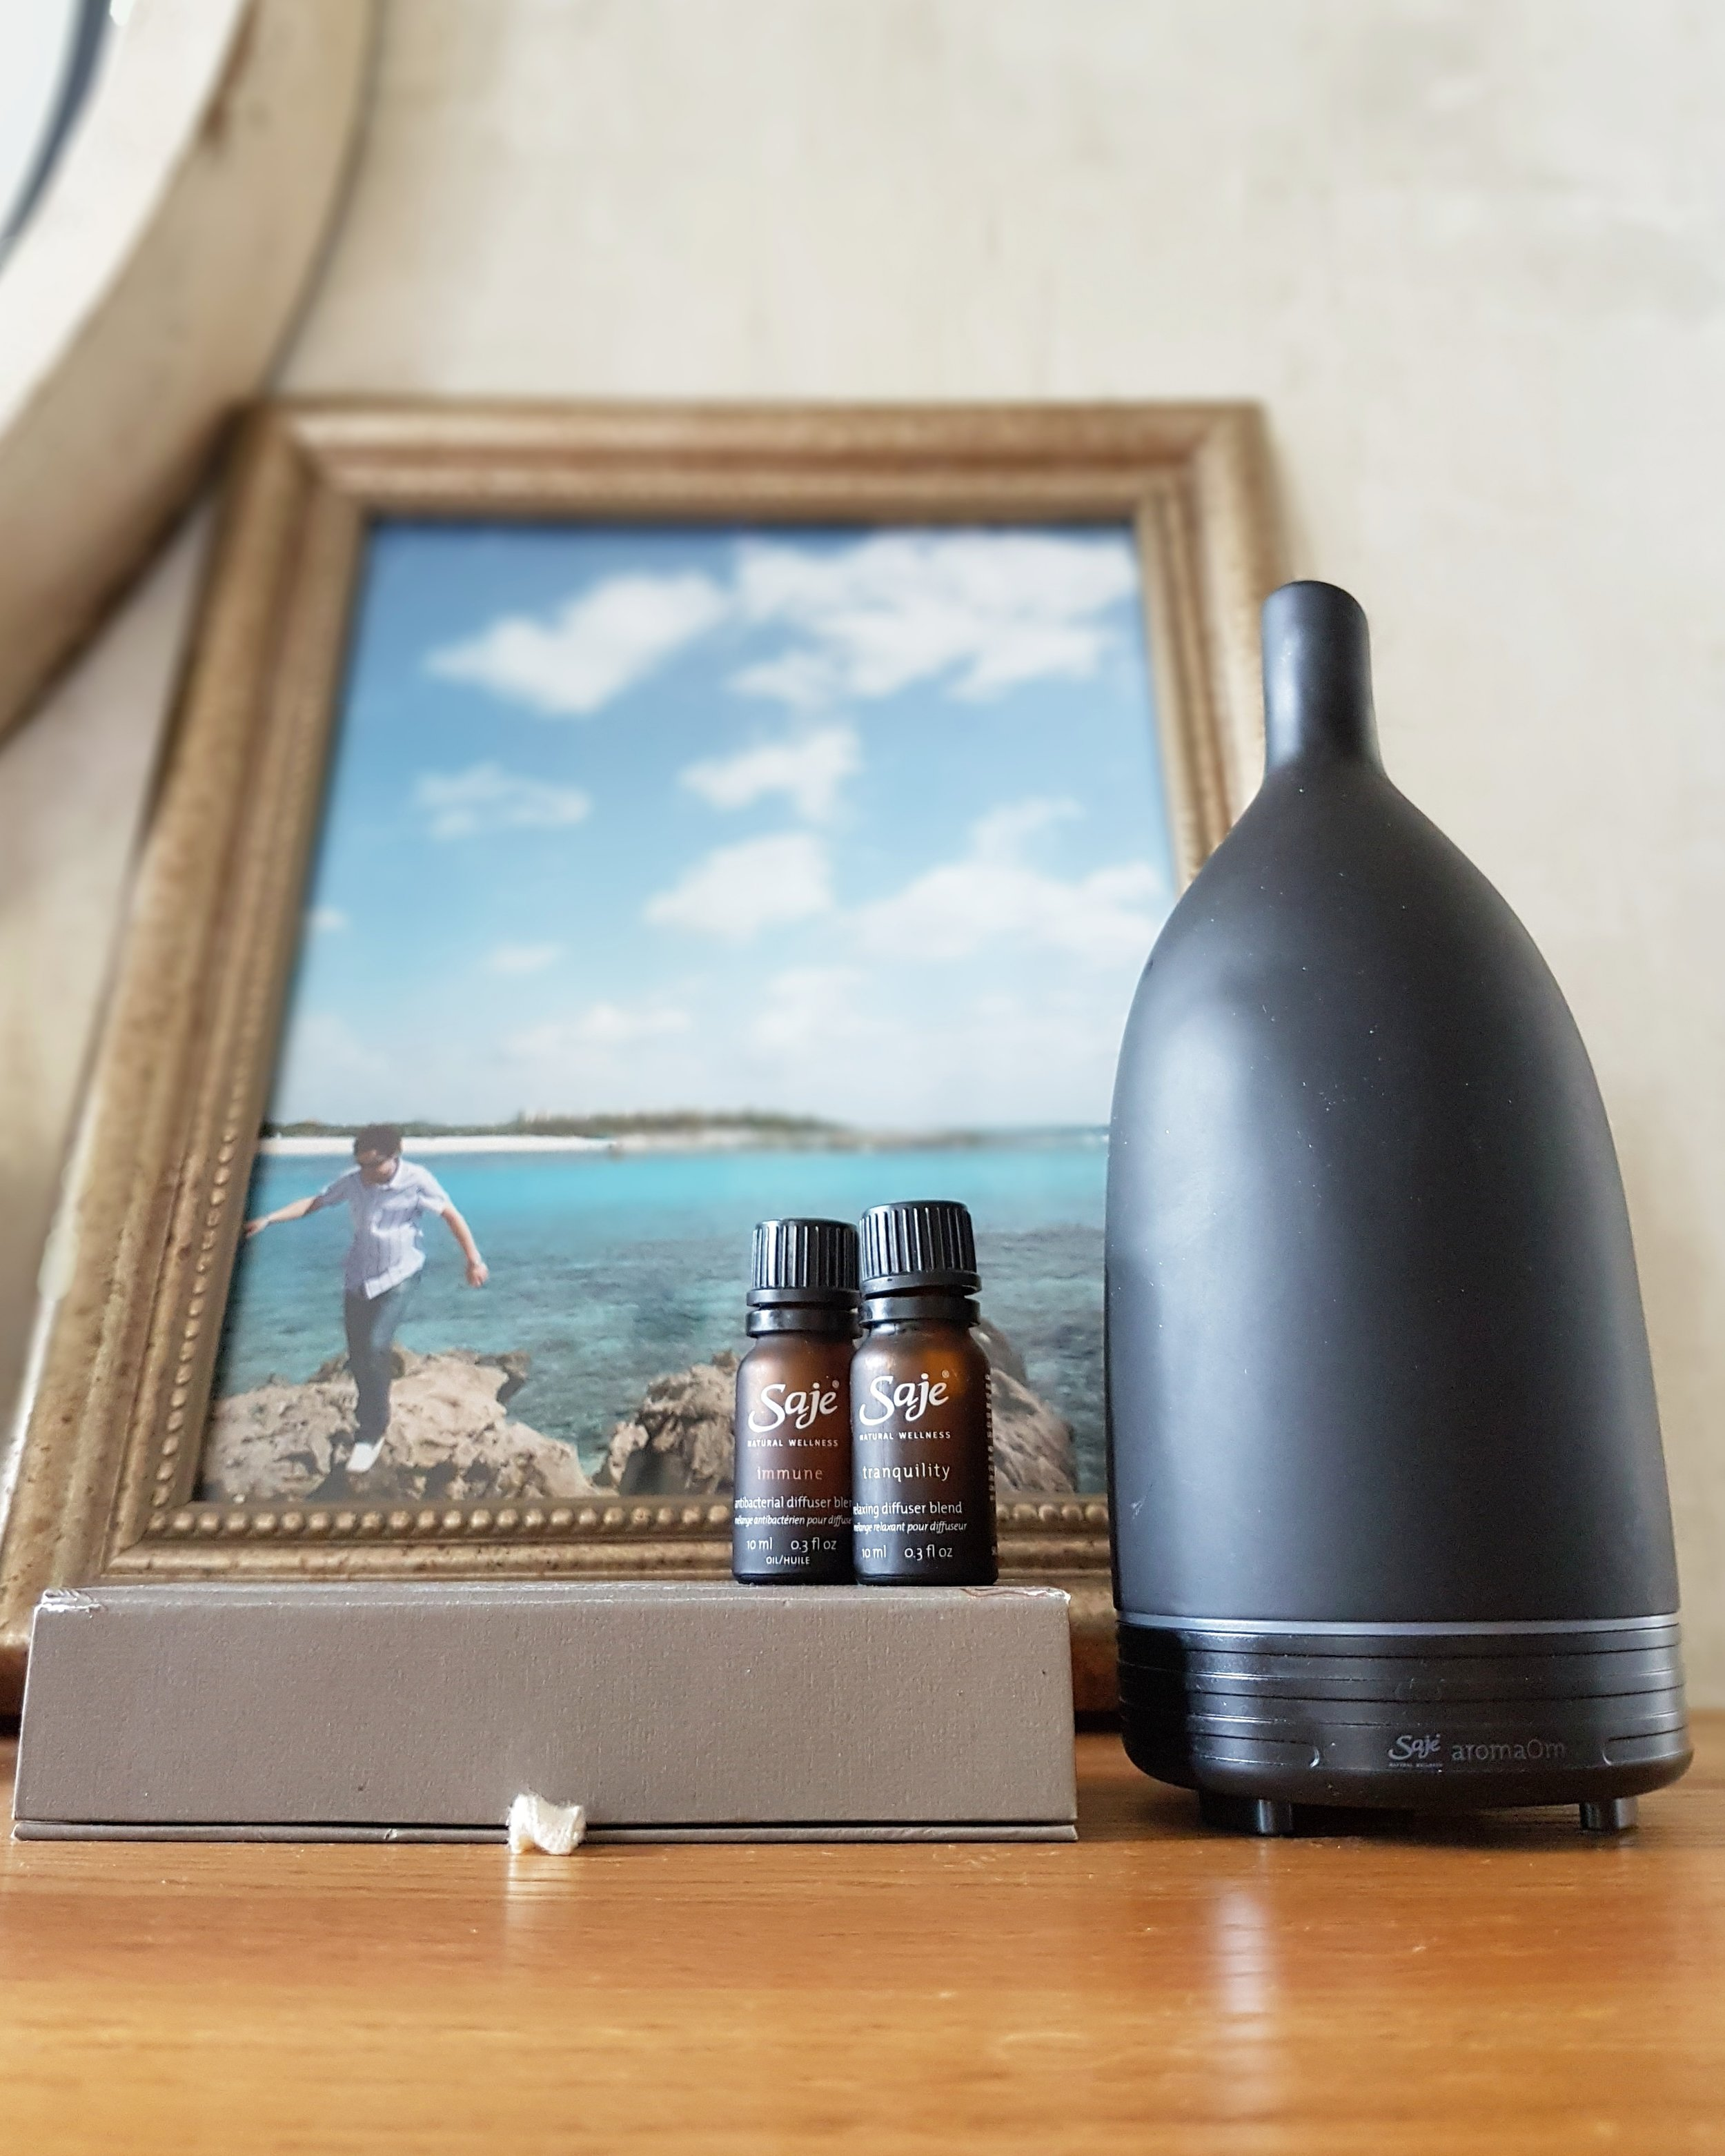 saje diffuser namaste essential oils review